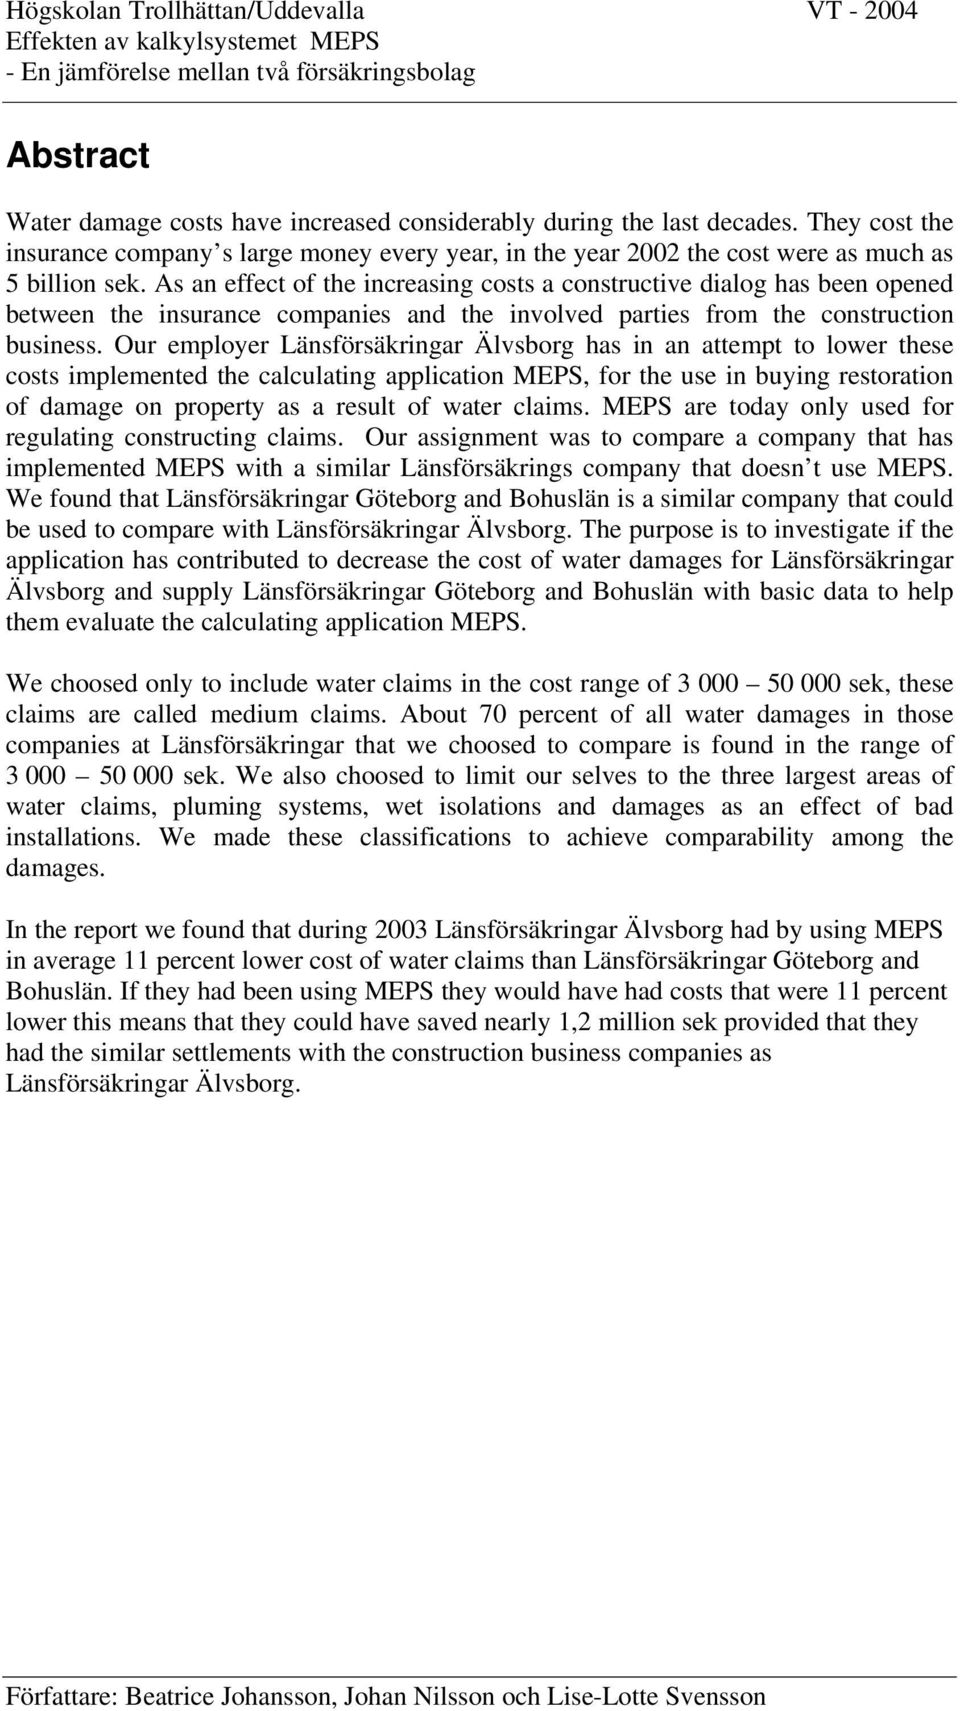 Our employer Länsförsäkringar Älvsborg has in an attempt to lower these costs implemented the calculating application MEPS, for the use in buying restoration of damage on property as a result of